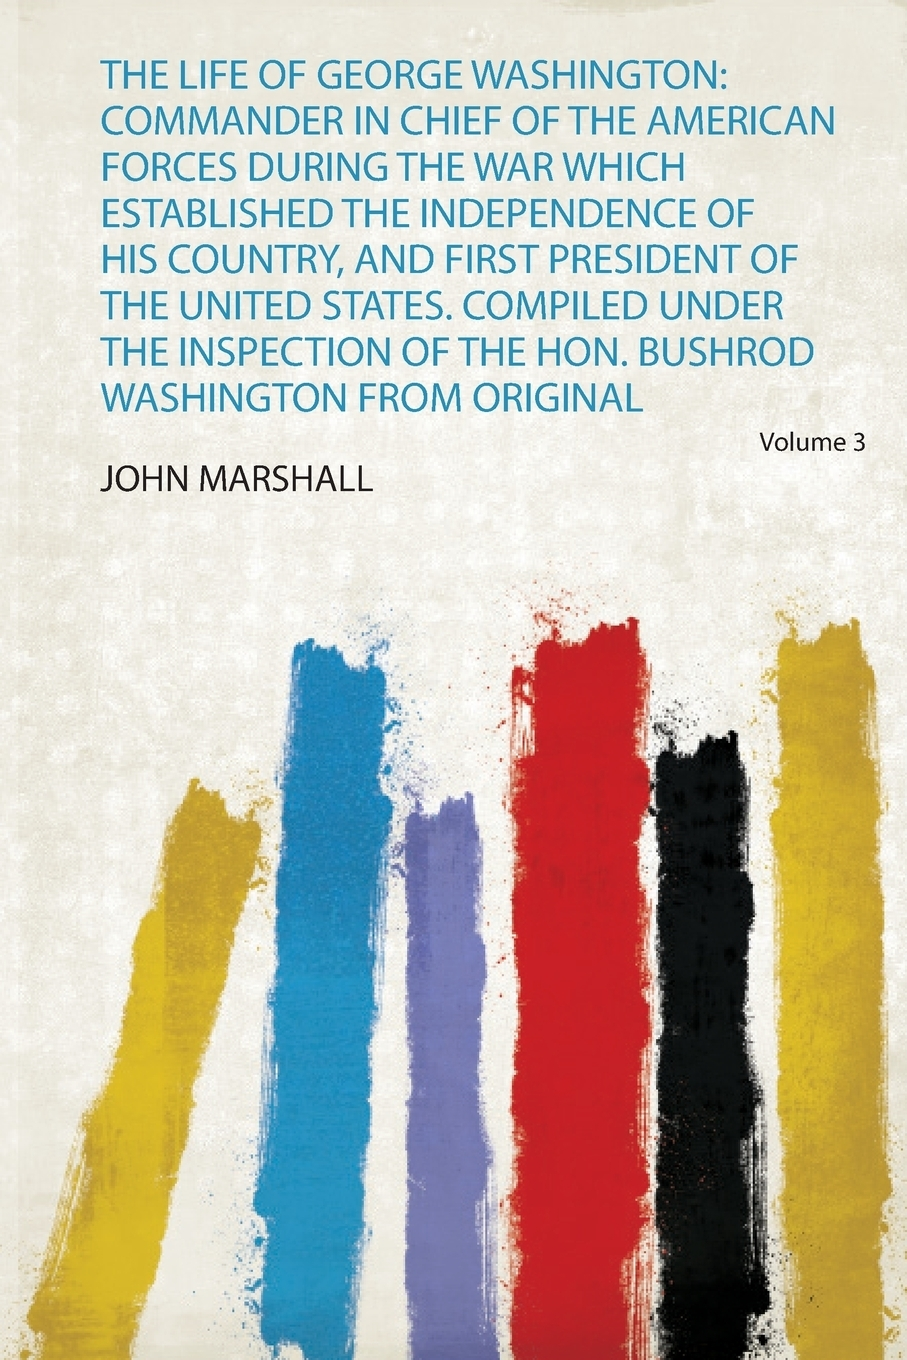 The Life of George Washington. Commander in Chief of the American Forces During the War Which Established the Independence of His Country, and First President of the United States. Compiled Under the Inspection of the Hon. Bushrod Washington from ... jim ware the leadership genius of george w bush 10 commonsense lessons from the commander in chief